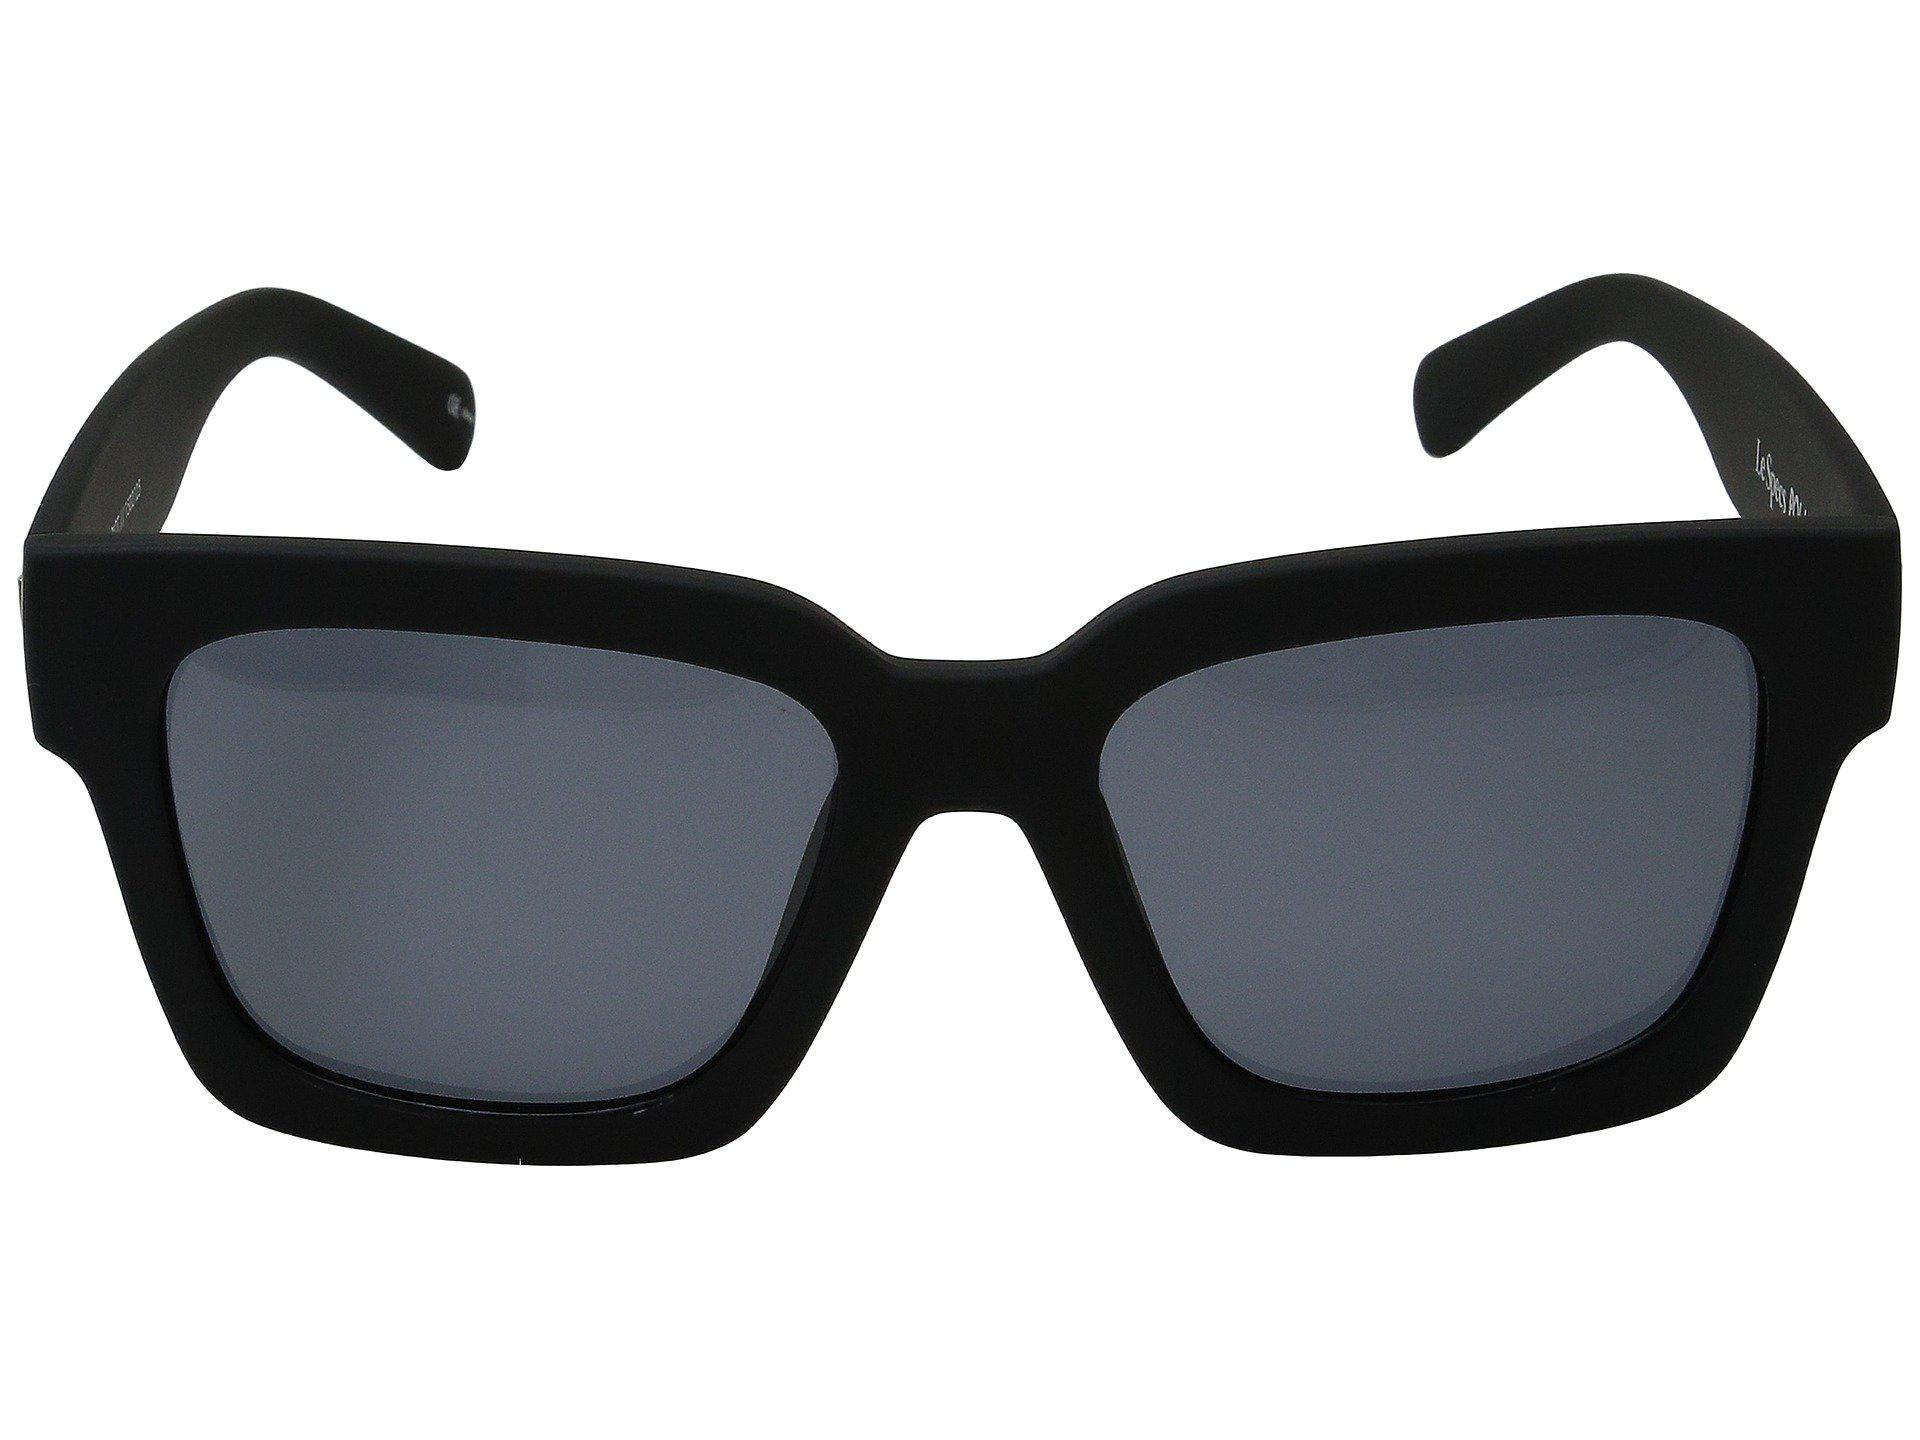 de267c06bda Le Specs - Weekend Riot (black Rubber) Fashion Sunglasses for Men - Lyst.  View fullscreen